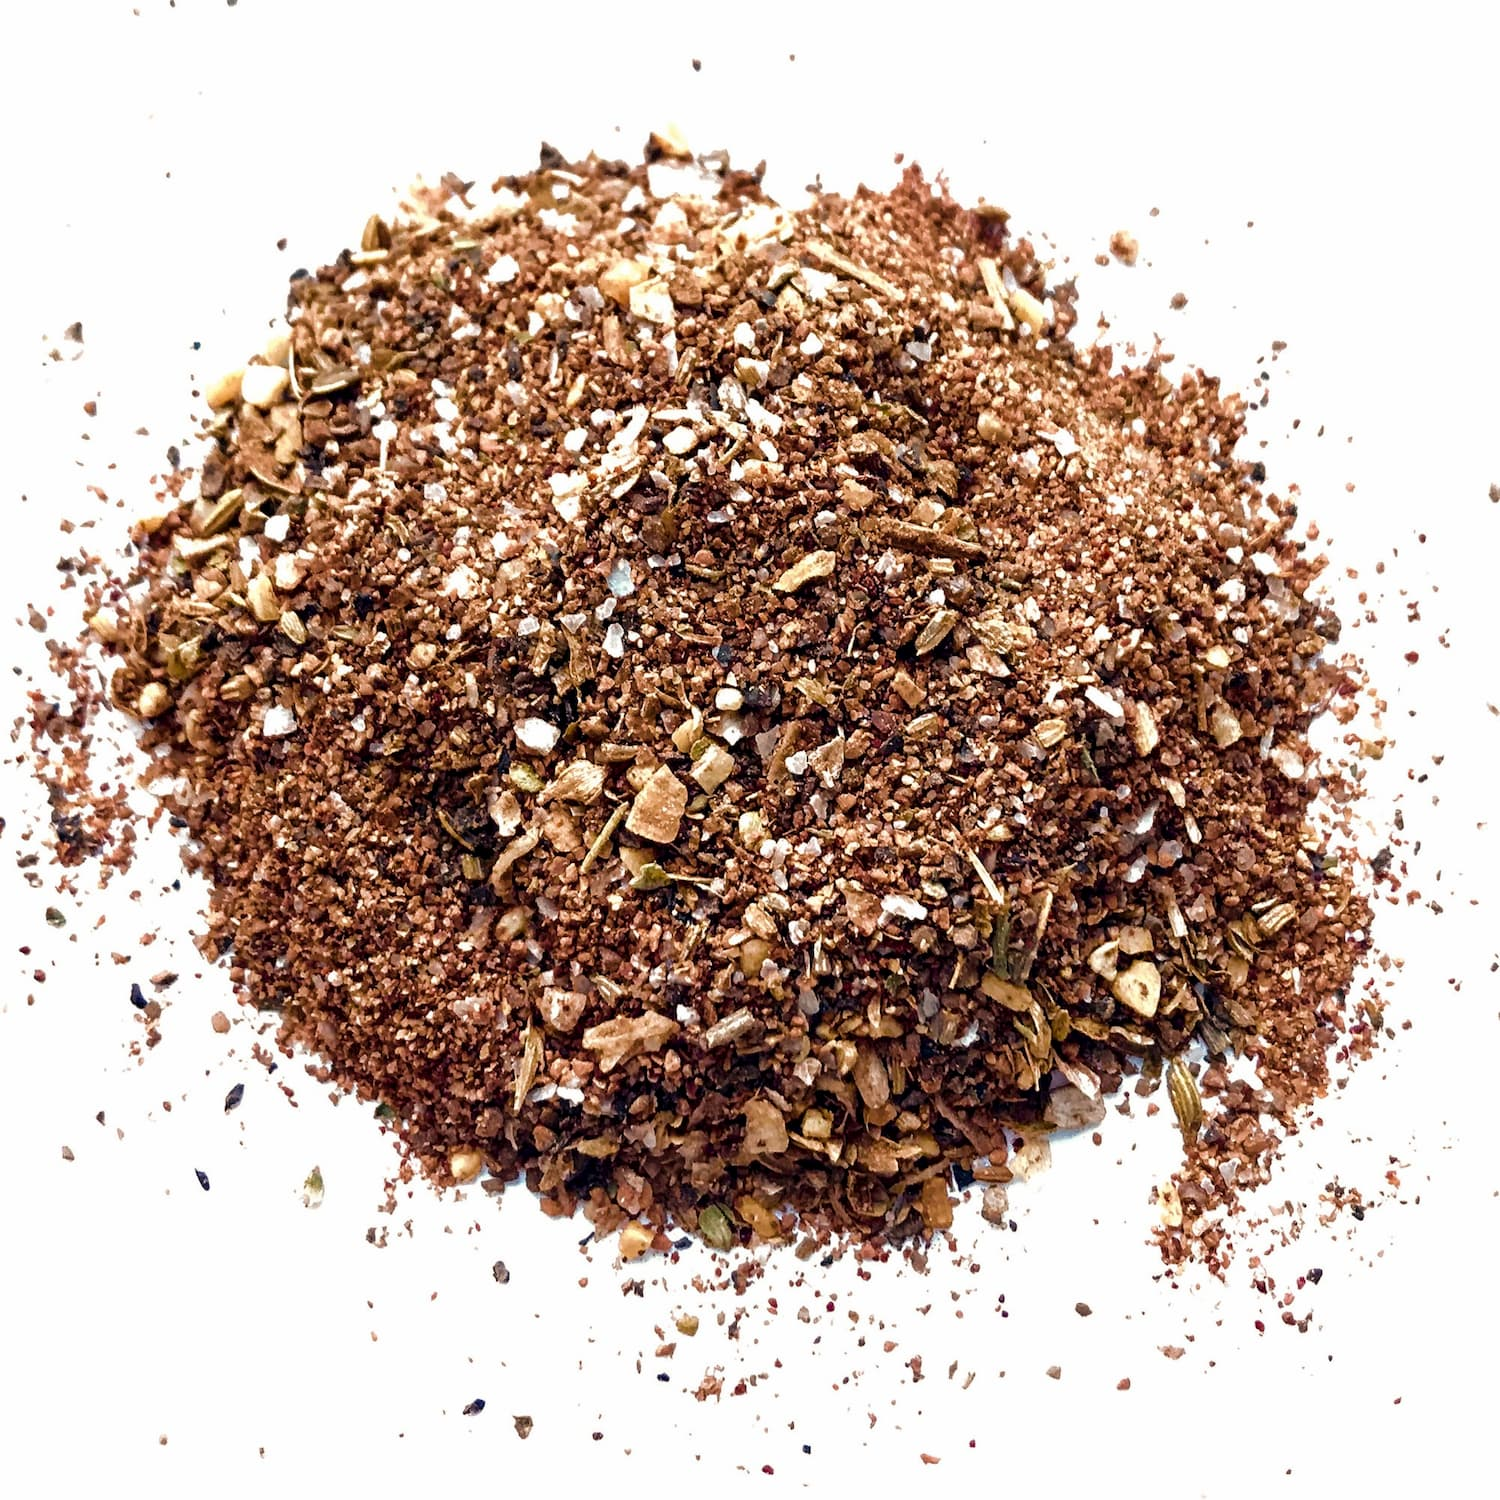 In this recipe: Abilene Depot blend - Think of Abilene Depot as your salt and pepper upgrade: smoked salt, coarse black pepper, fennel, and just a hint of cocoa will compliment nearly any dish and take it to the next level.✓ Certified Gluten-Free® ✓ Natural Ingredients ✓ No Sugar Added ✓ No PreservativesHeat level: MildFlavor Profile: smoky, savory, earthy, freshDelicious on: Beef (especially steaks & burgers), lamb, wild game, chicken, baked potatoes, grilled veggies, green salads, anywhere you'd use salt & pepper